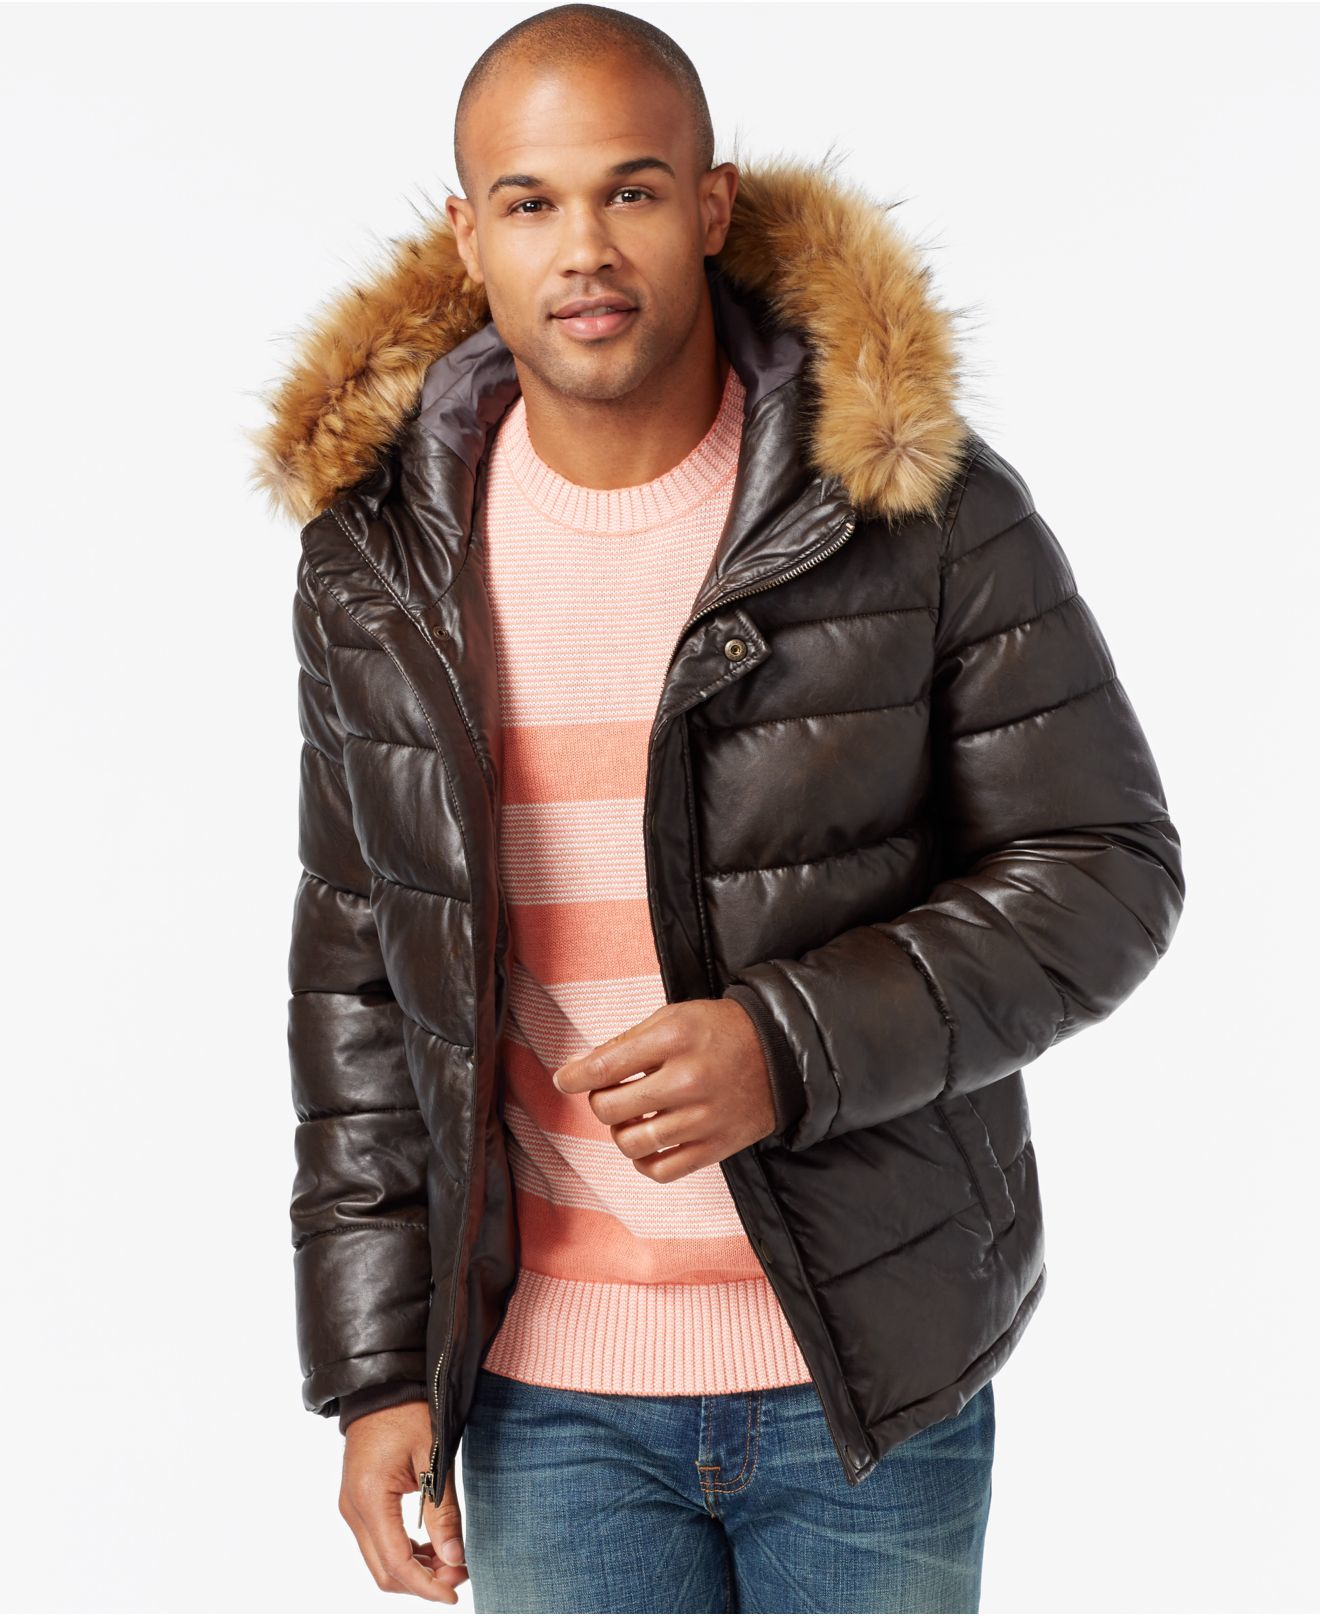 tommy hilfiger down jacket herren superjacken 2018. Black Bedroom Furniture Sets. Home Design Ideas